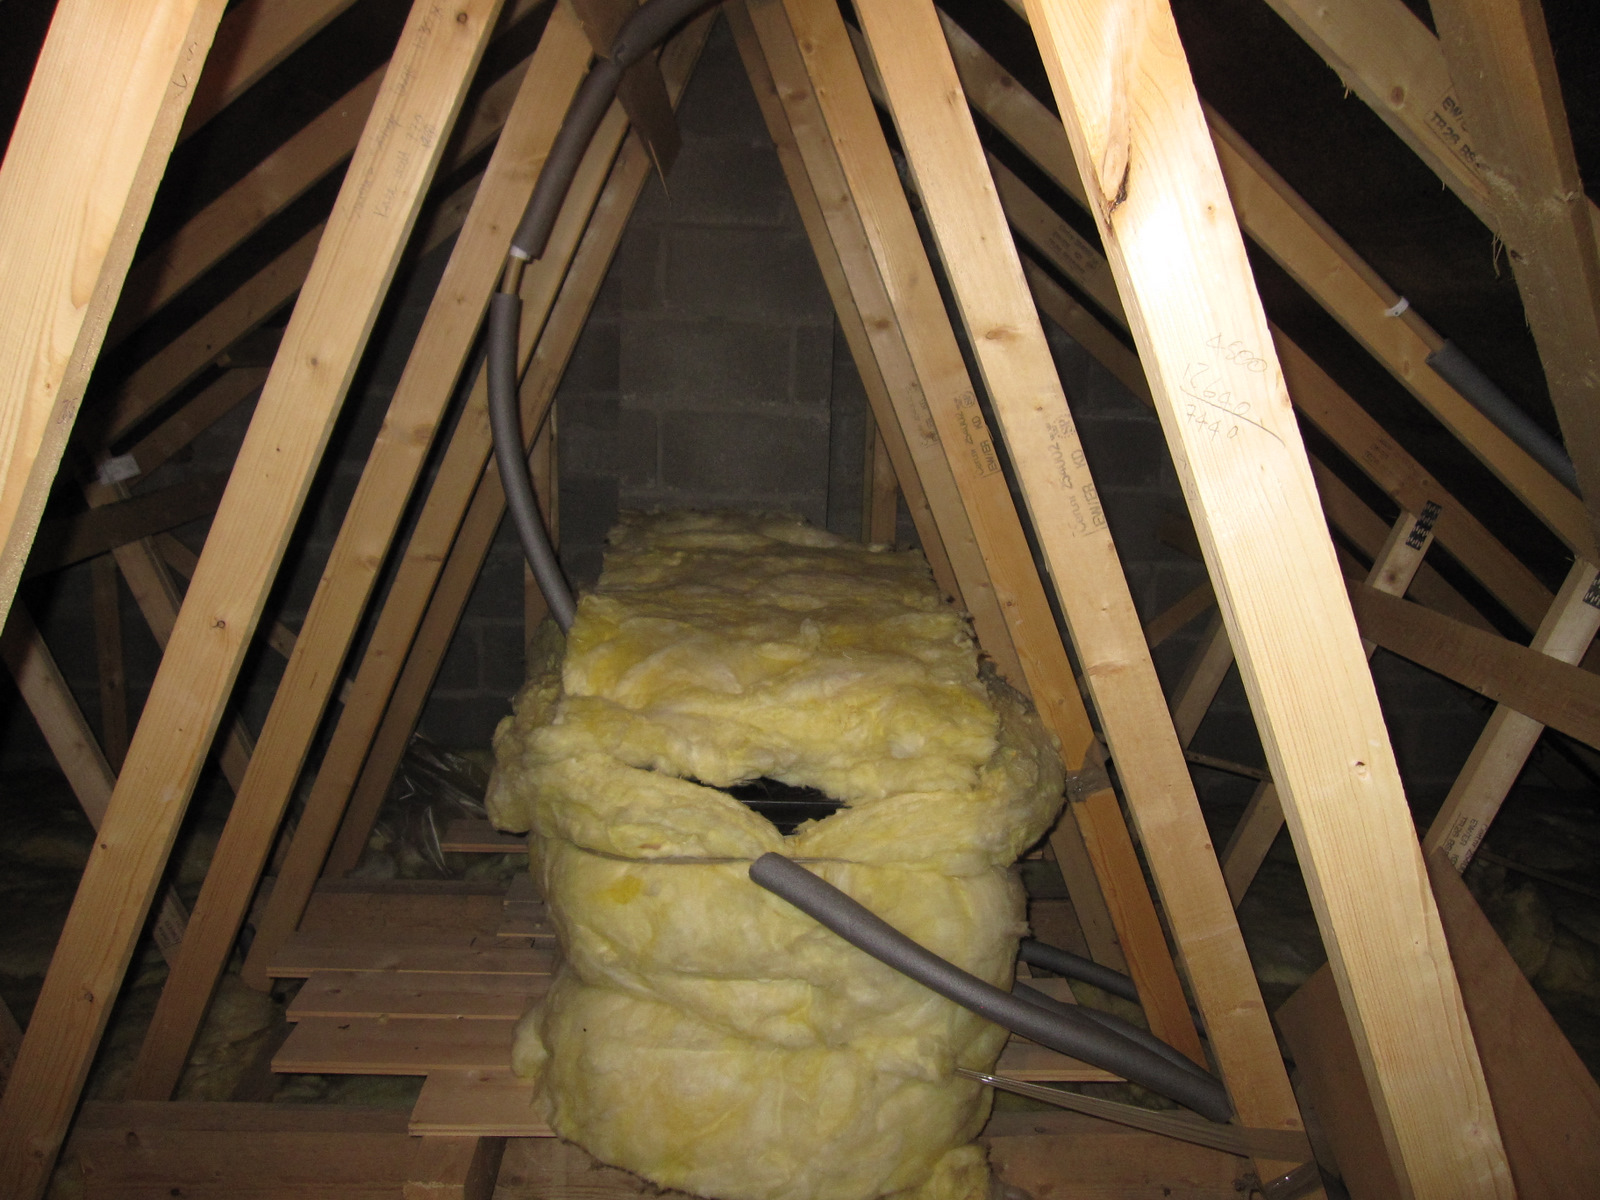 tulpenpink before and after pictures the attic conversion cellulose insulation attic images